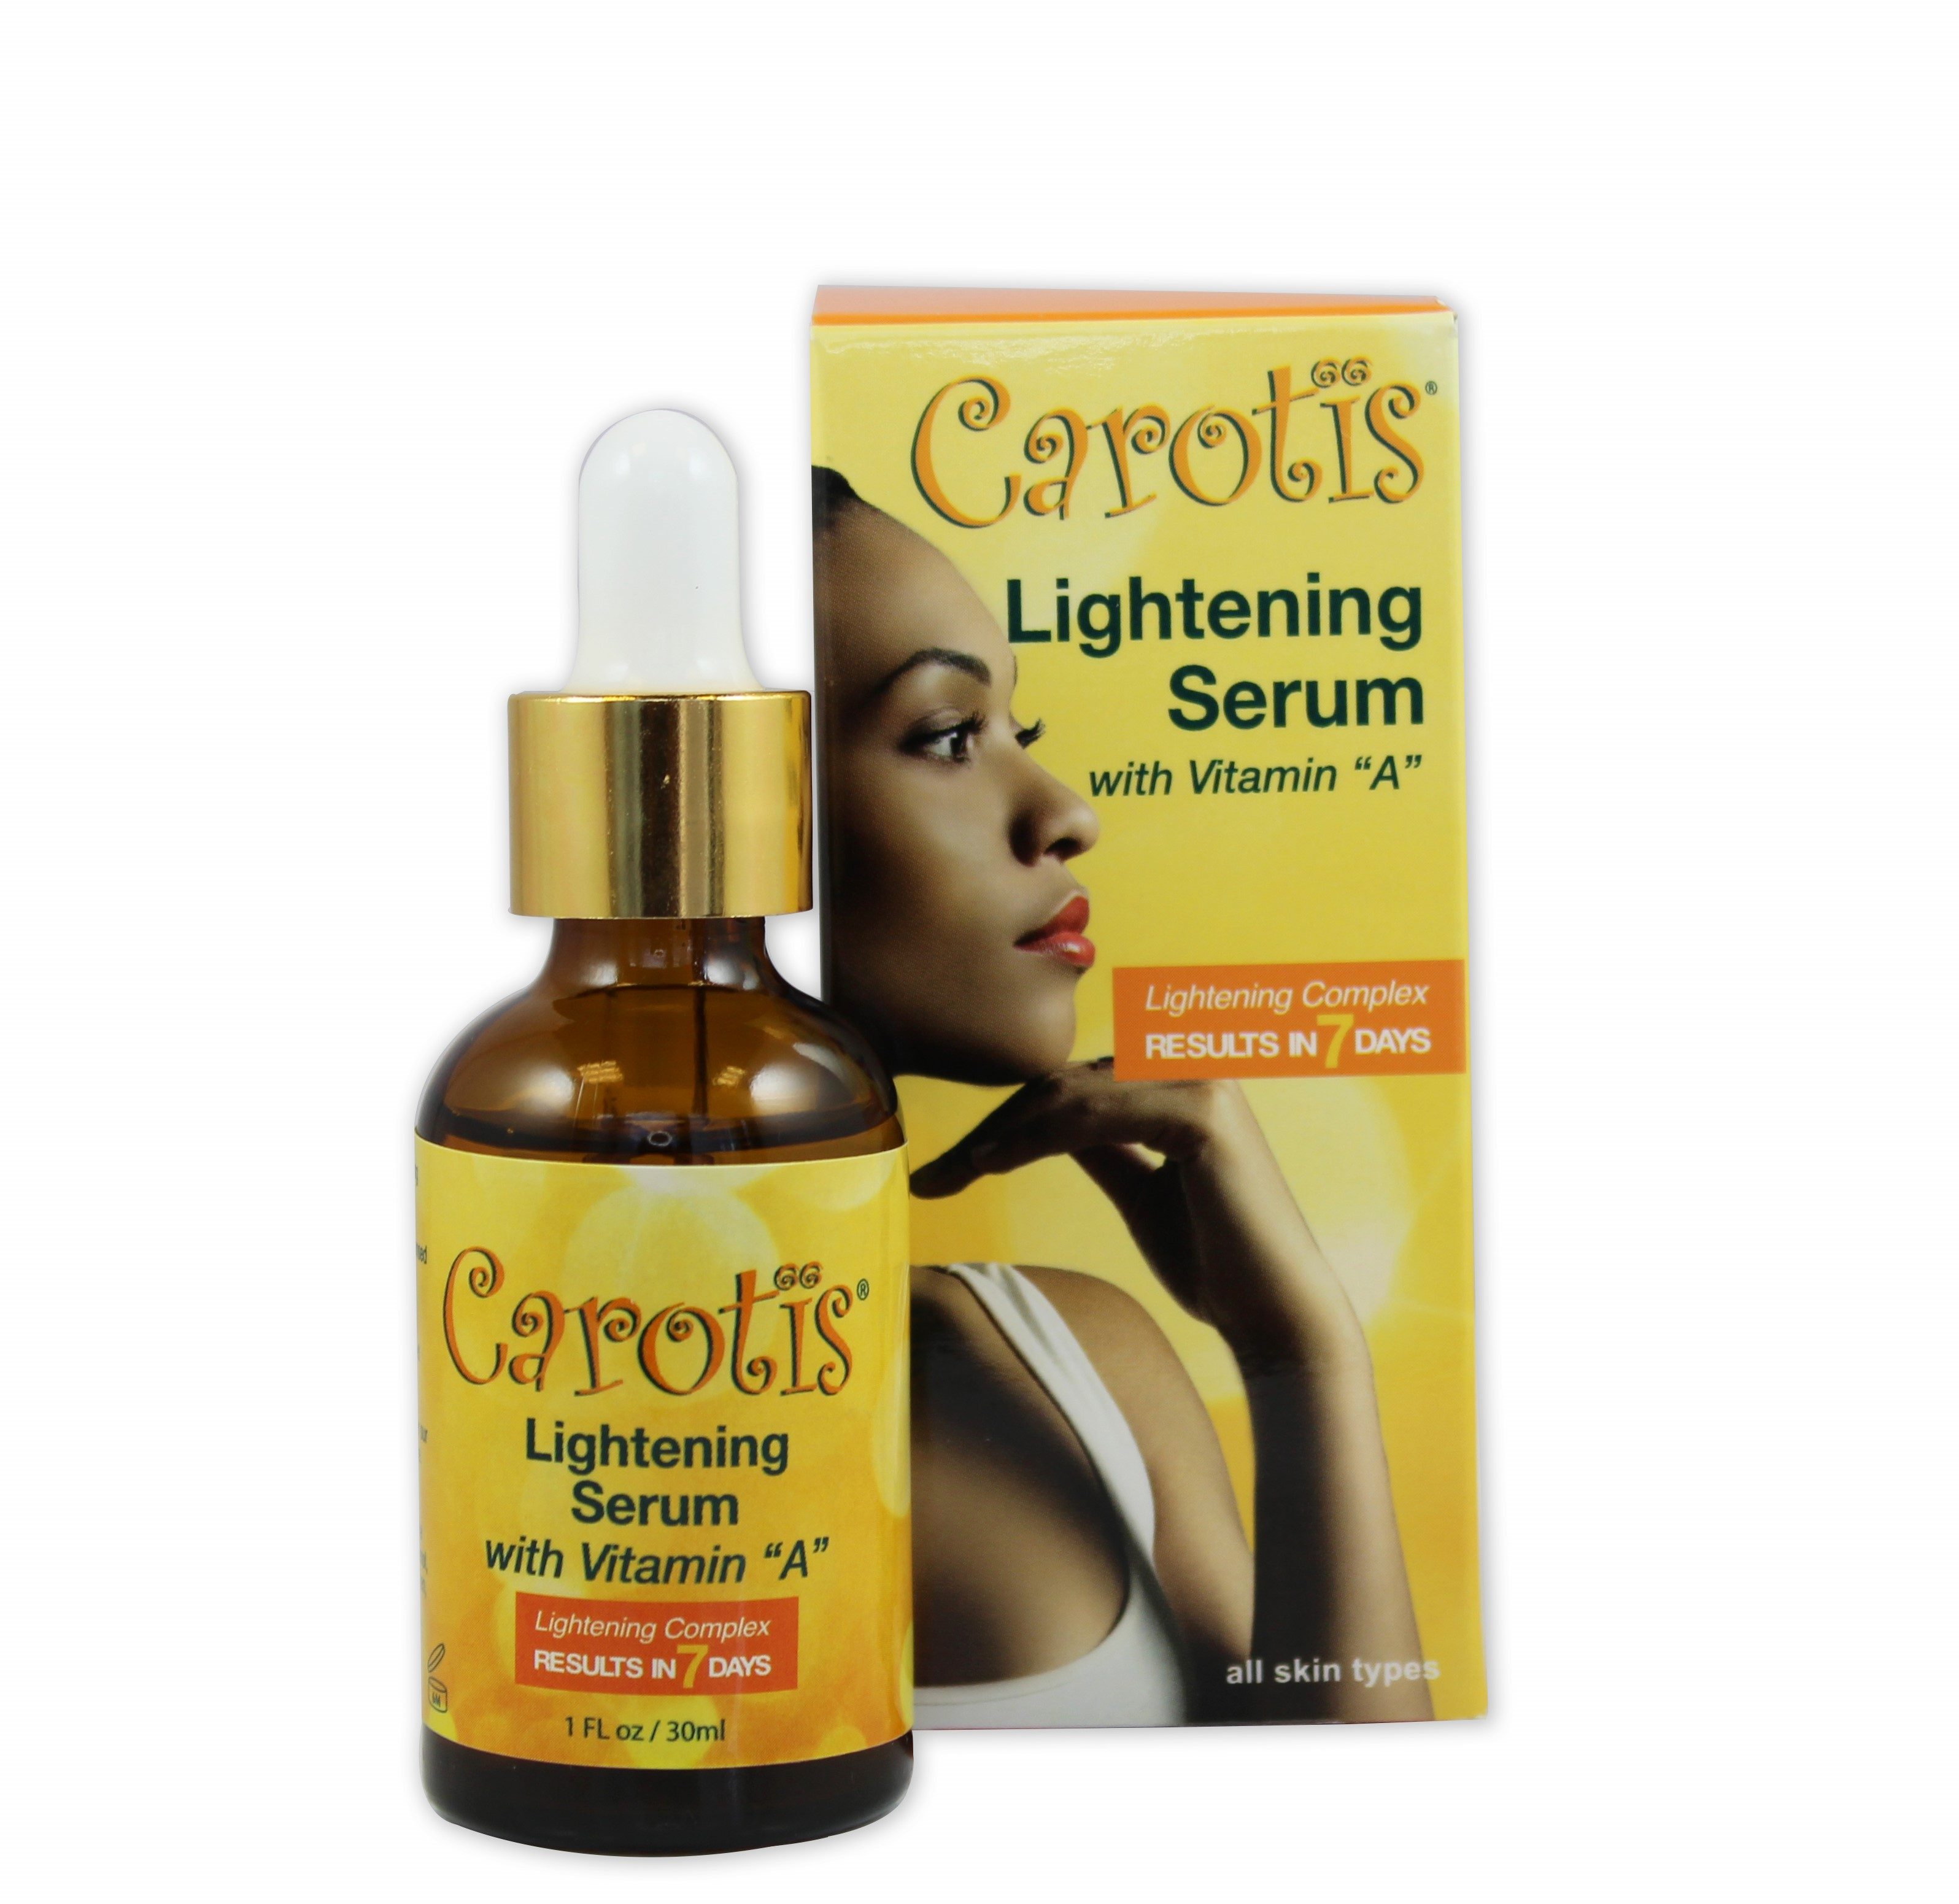 Carotis Lightening Serum - Results In 7 Days